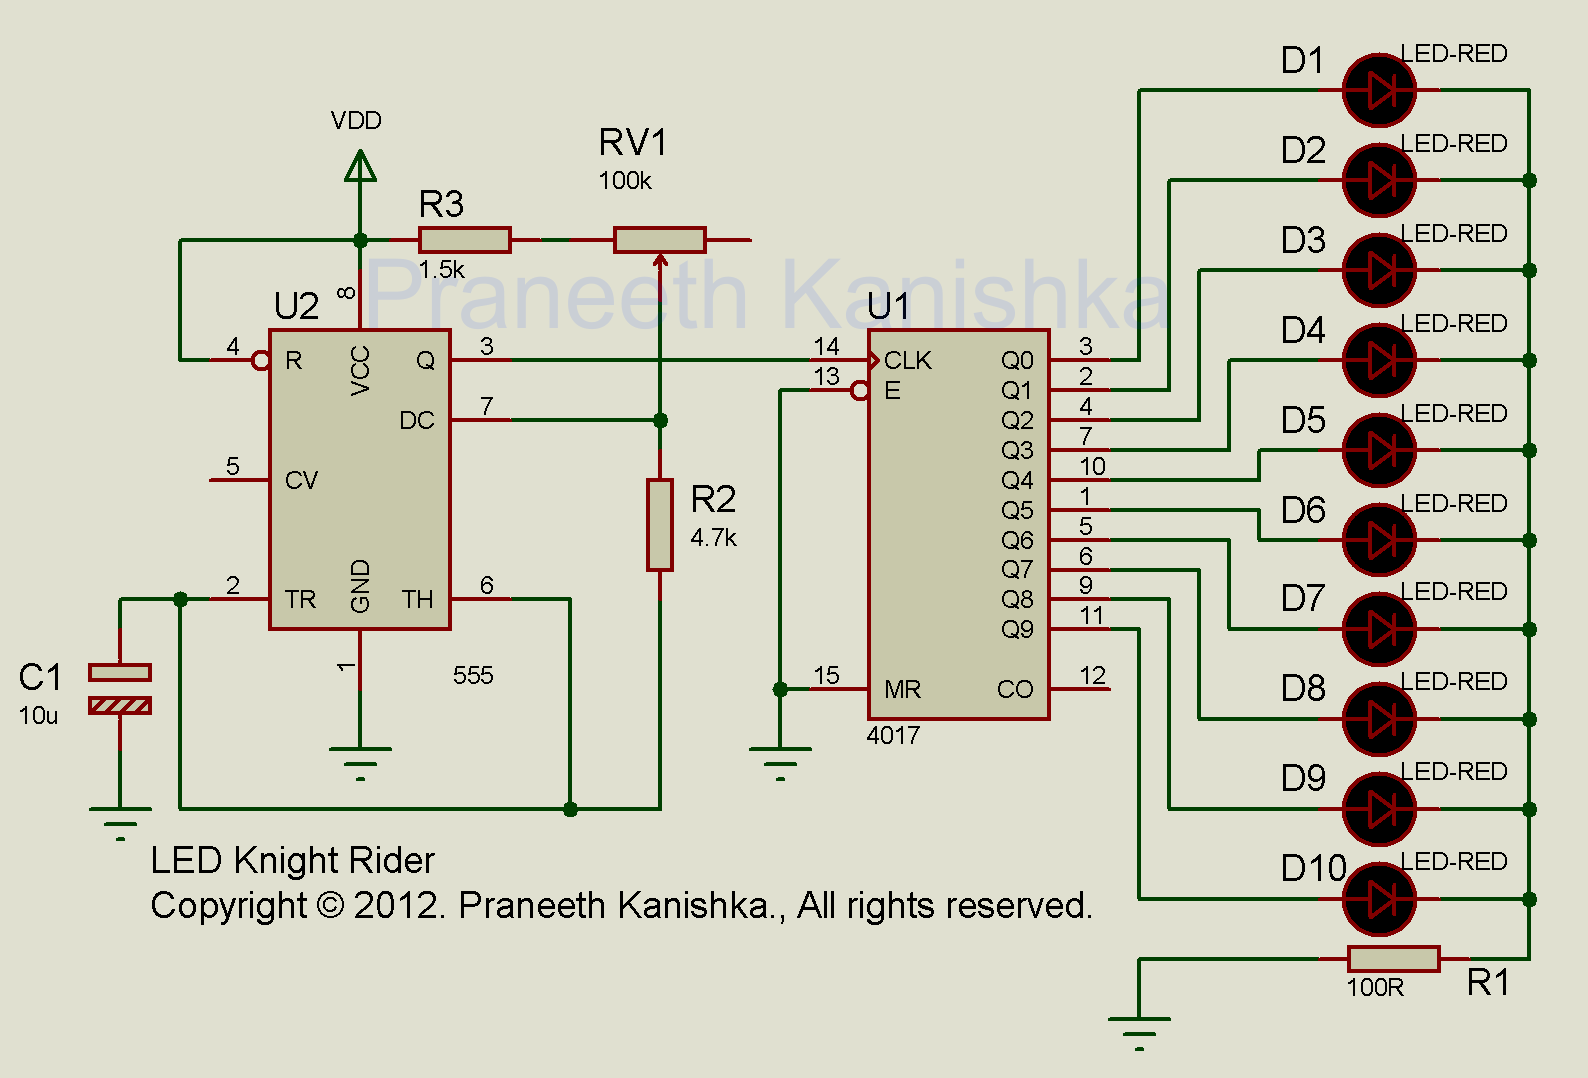 small resolution of 11 led knight rider project circuit diagram wiring diagram yer 4017 led knight rider running light circuit diagram circuit wiring